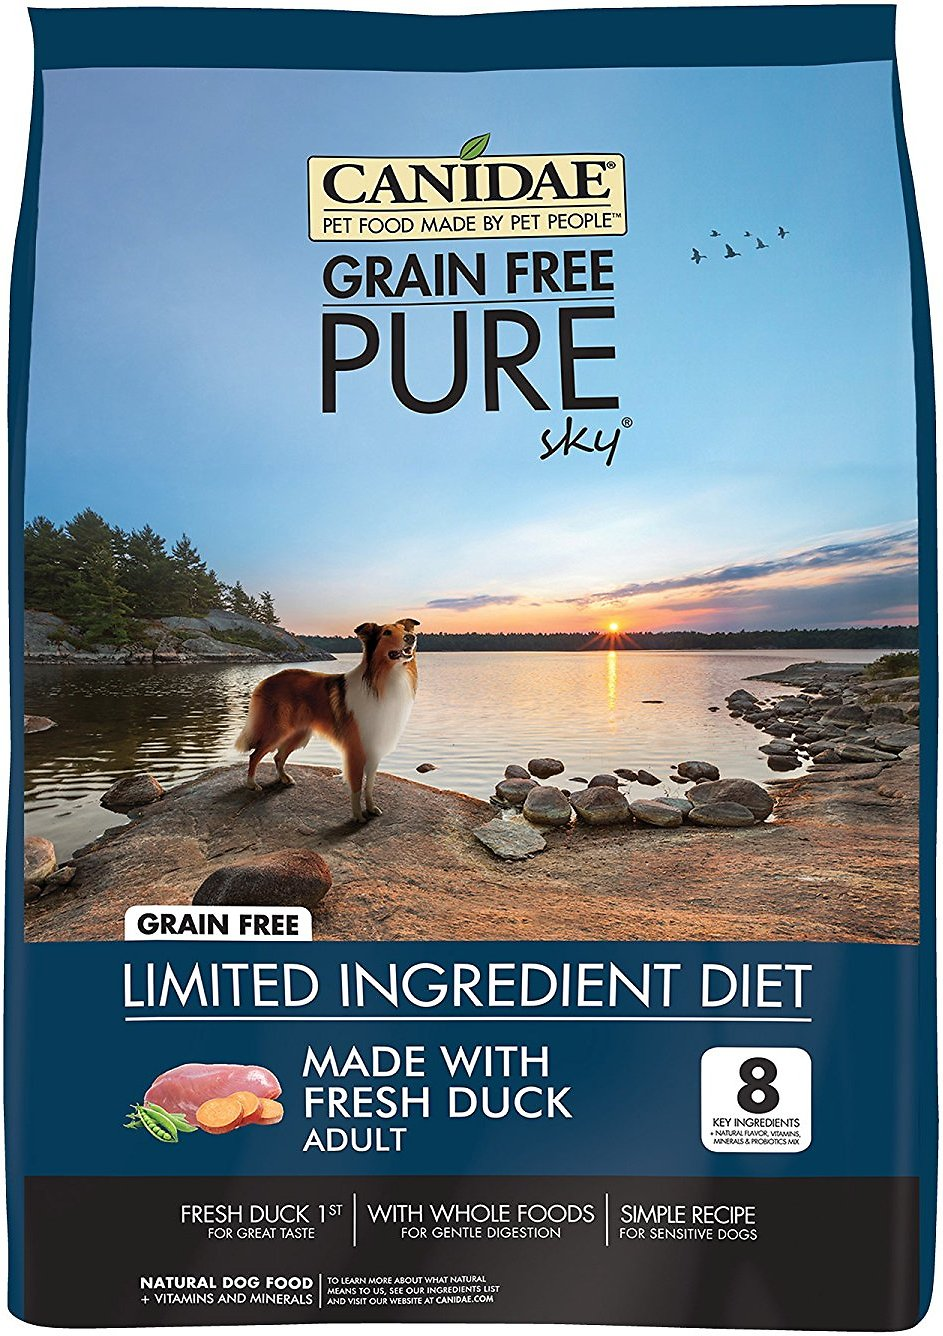 Canidae Grain-Free PURE Sky with Duck Limited Ingredient Diet Adult Dry Dog Food Image